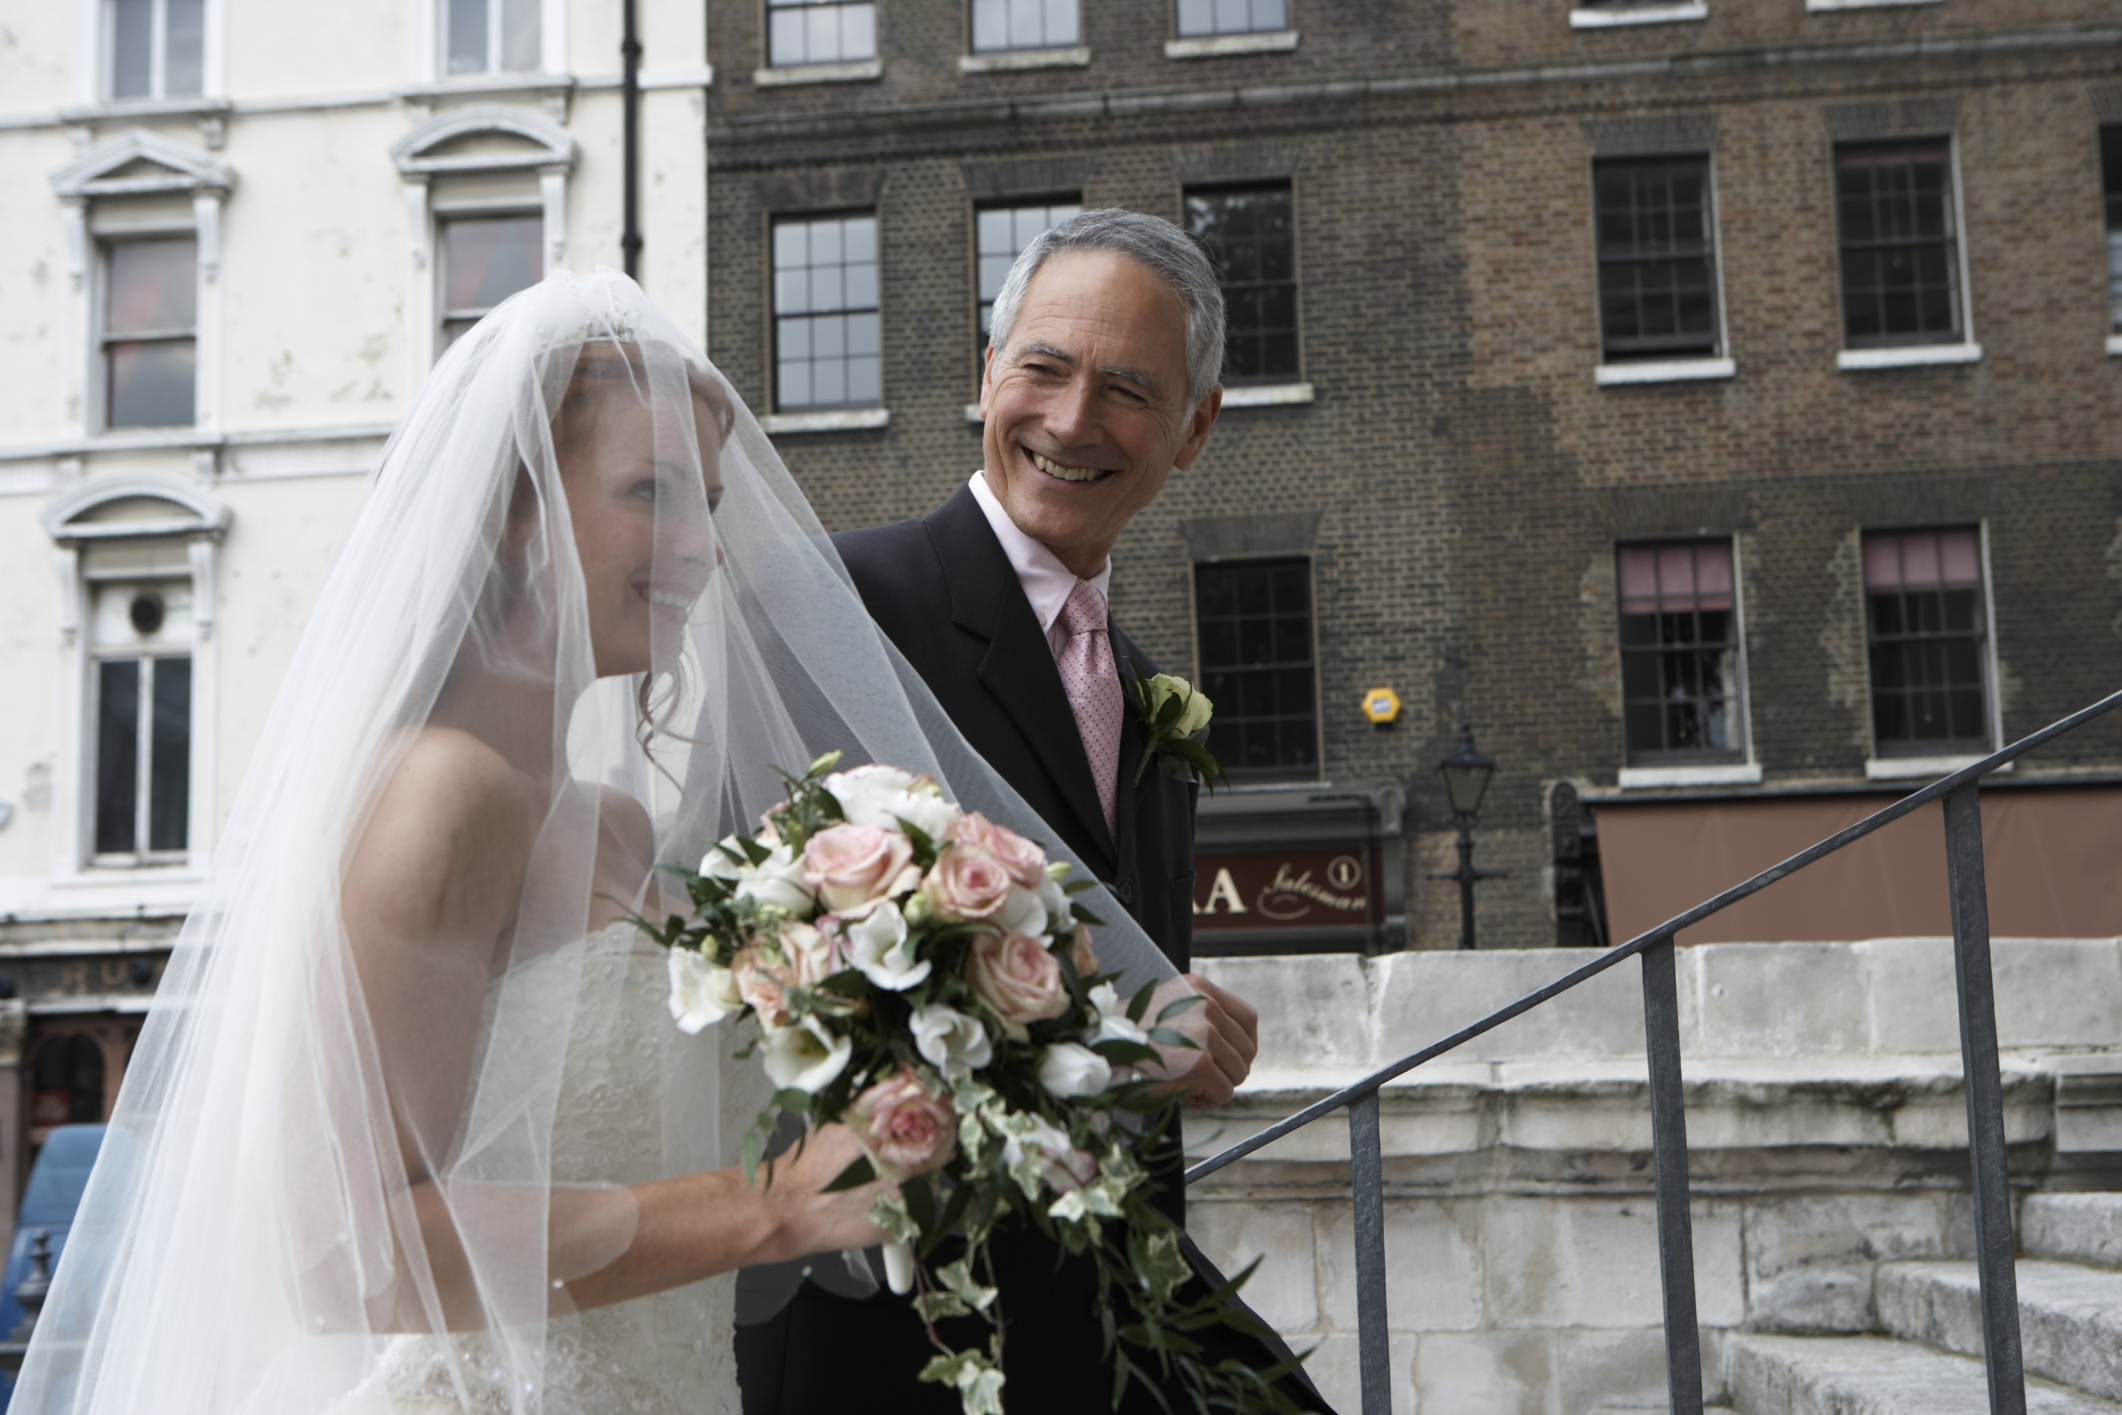 Father Of The Bride: Father Of The Bride Duties